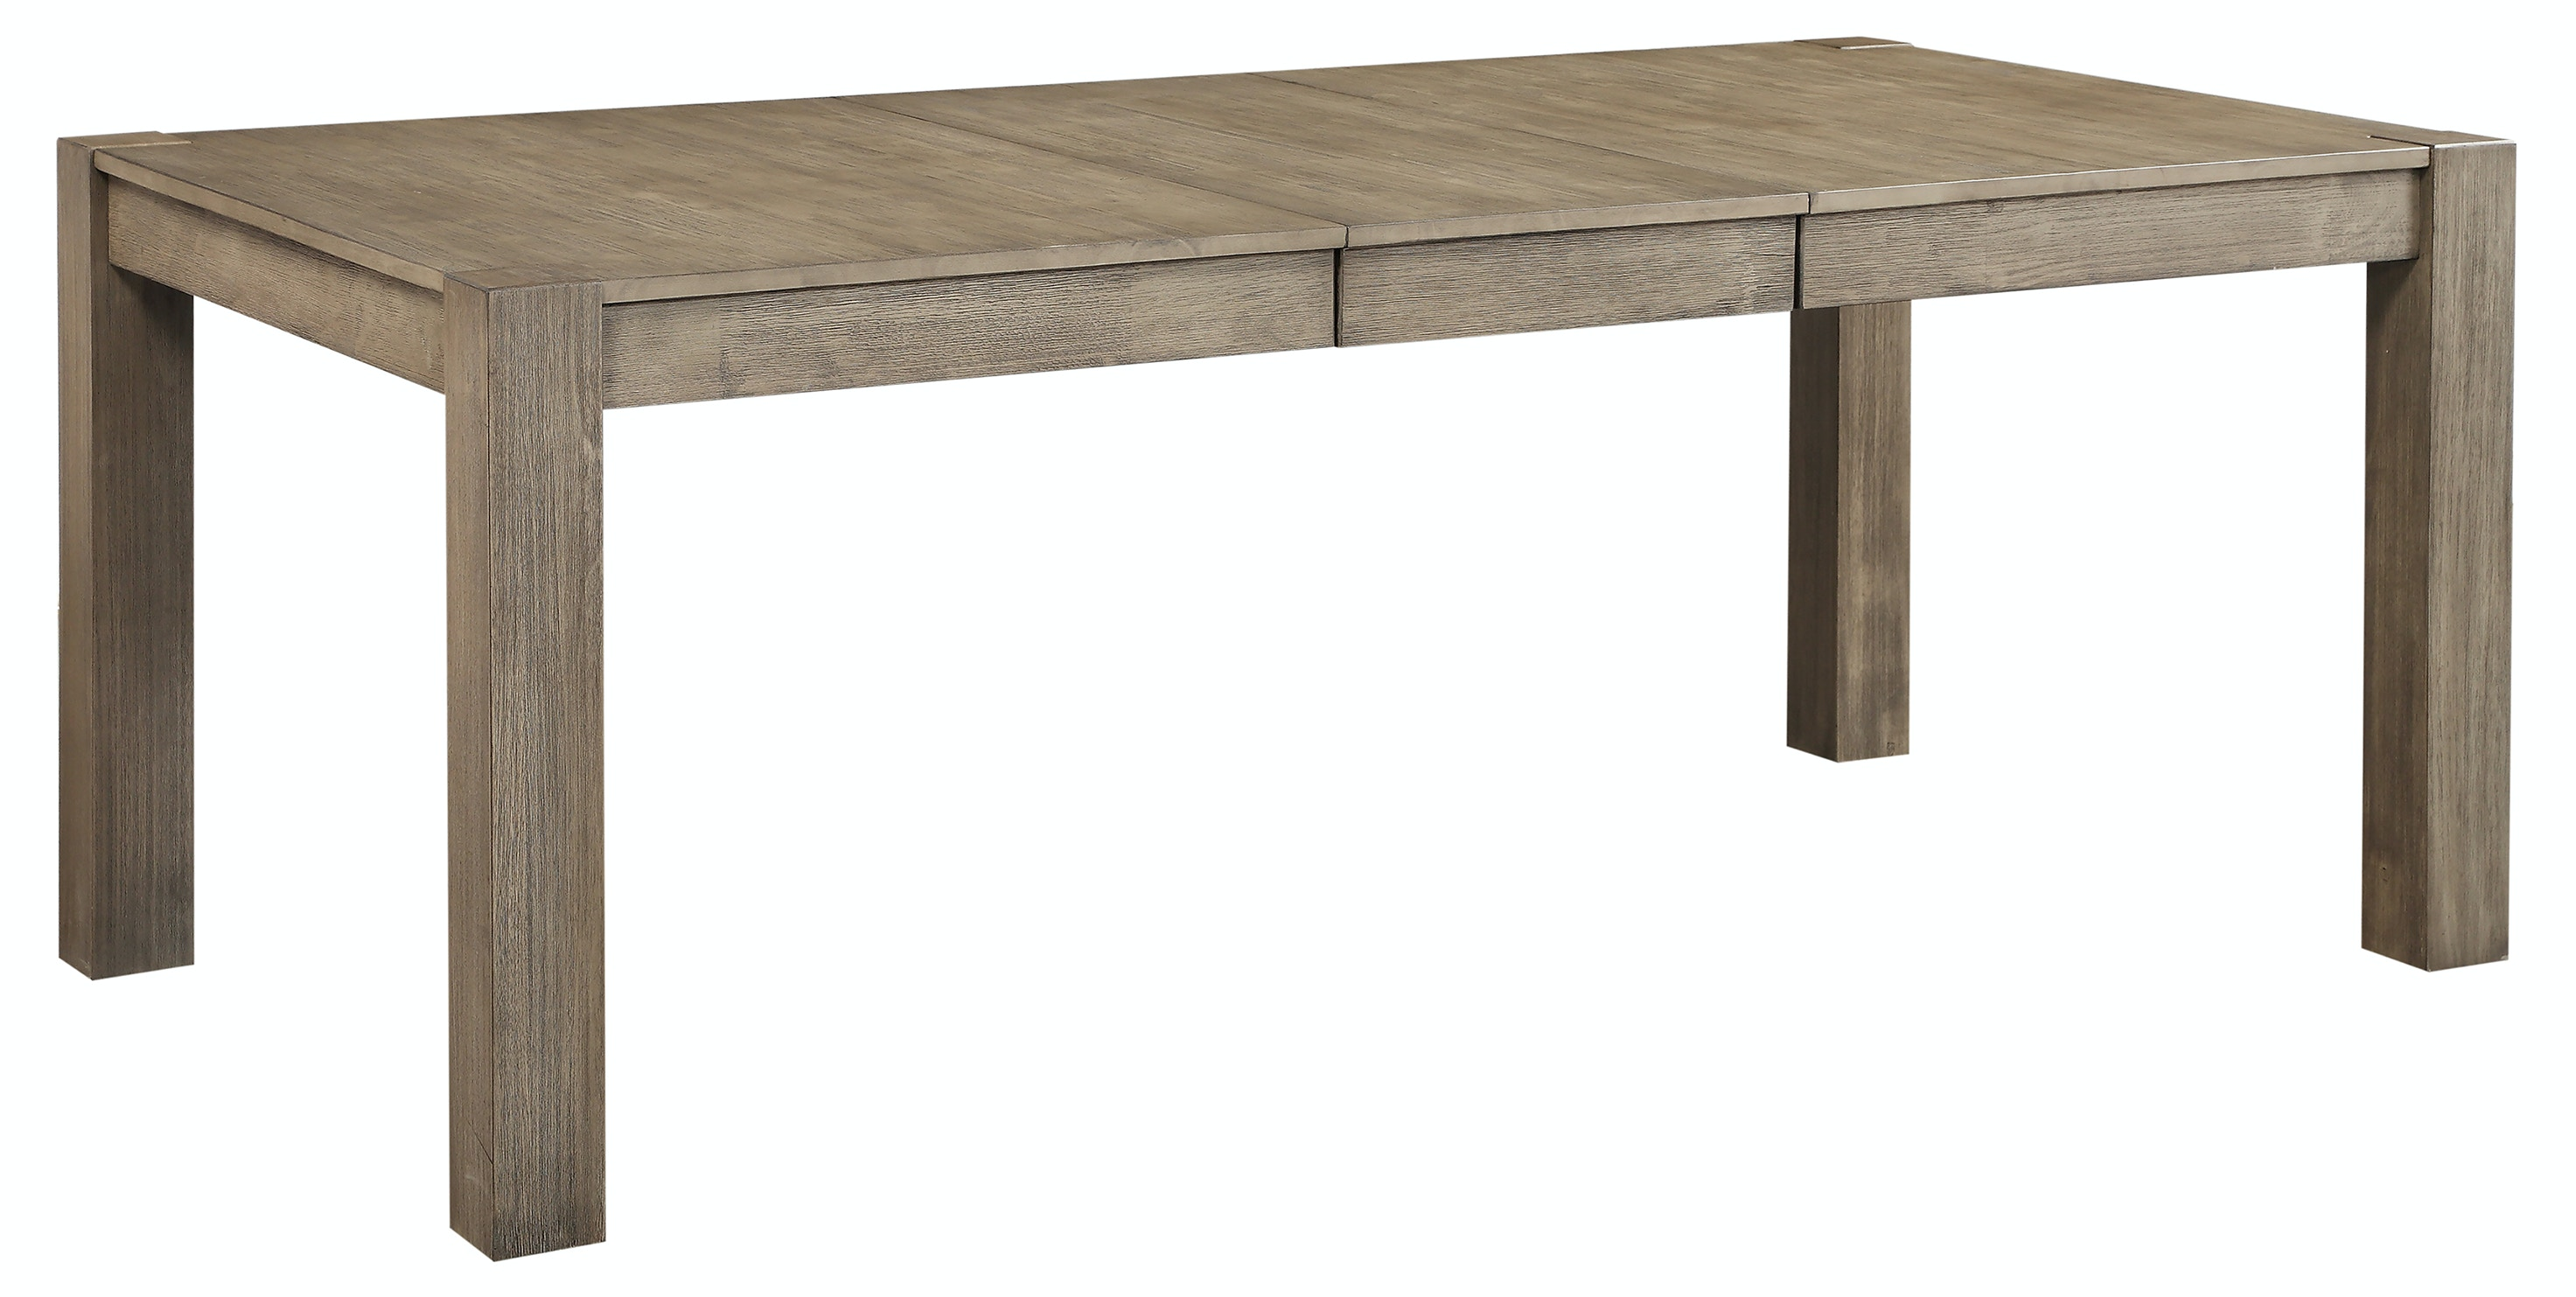 Easton Grey Dining Table ST:481565